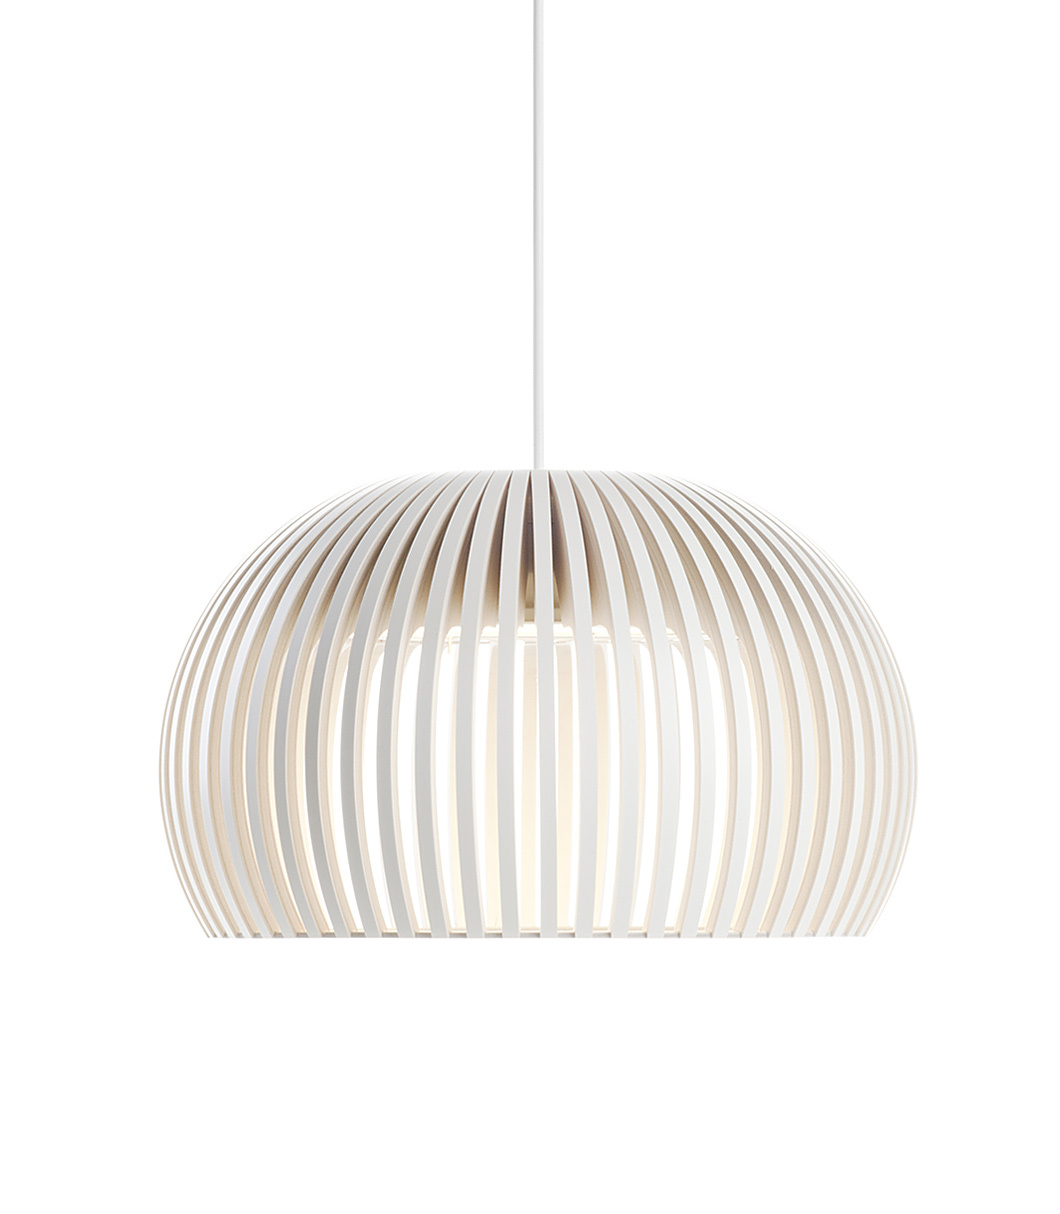 Atto 5000 pendant lamp color white